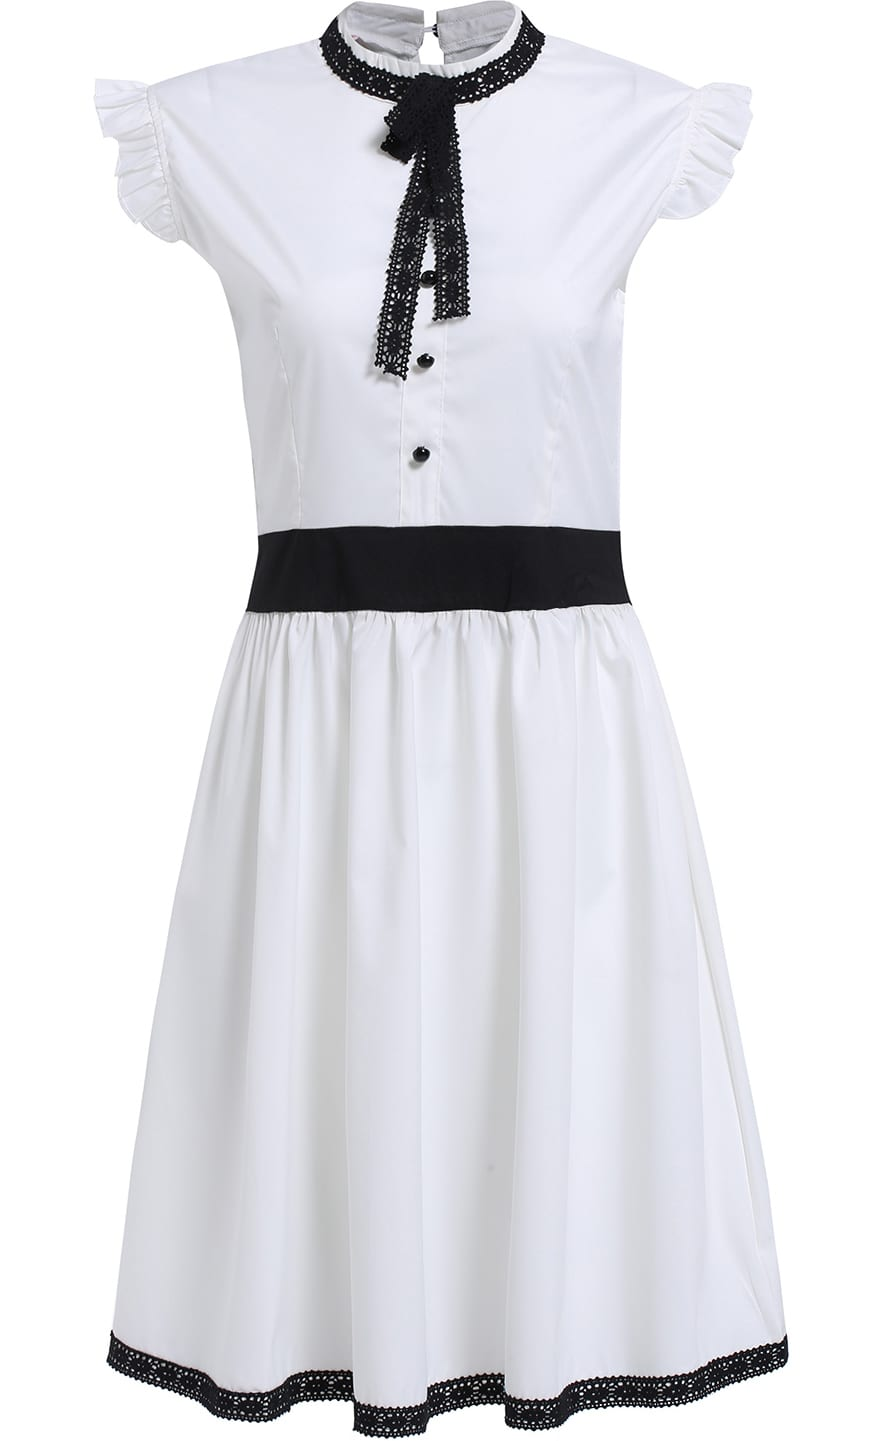 White Peplum Collar Ruffle Flare Dress $14.00 AT vintagedancer.com